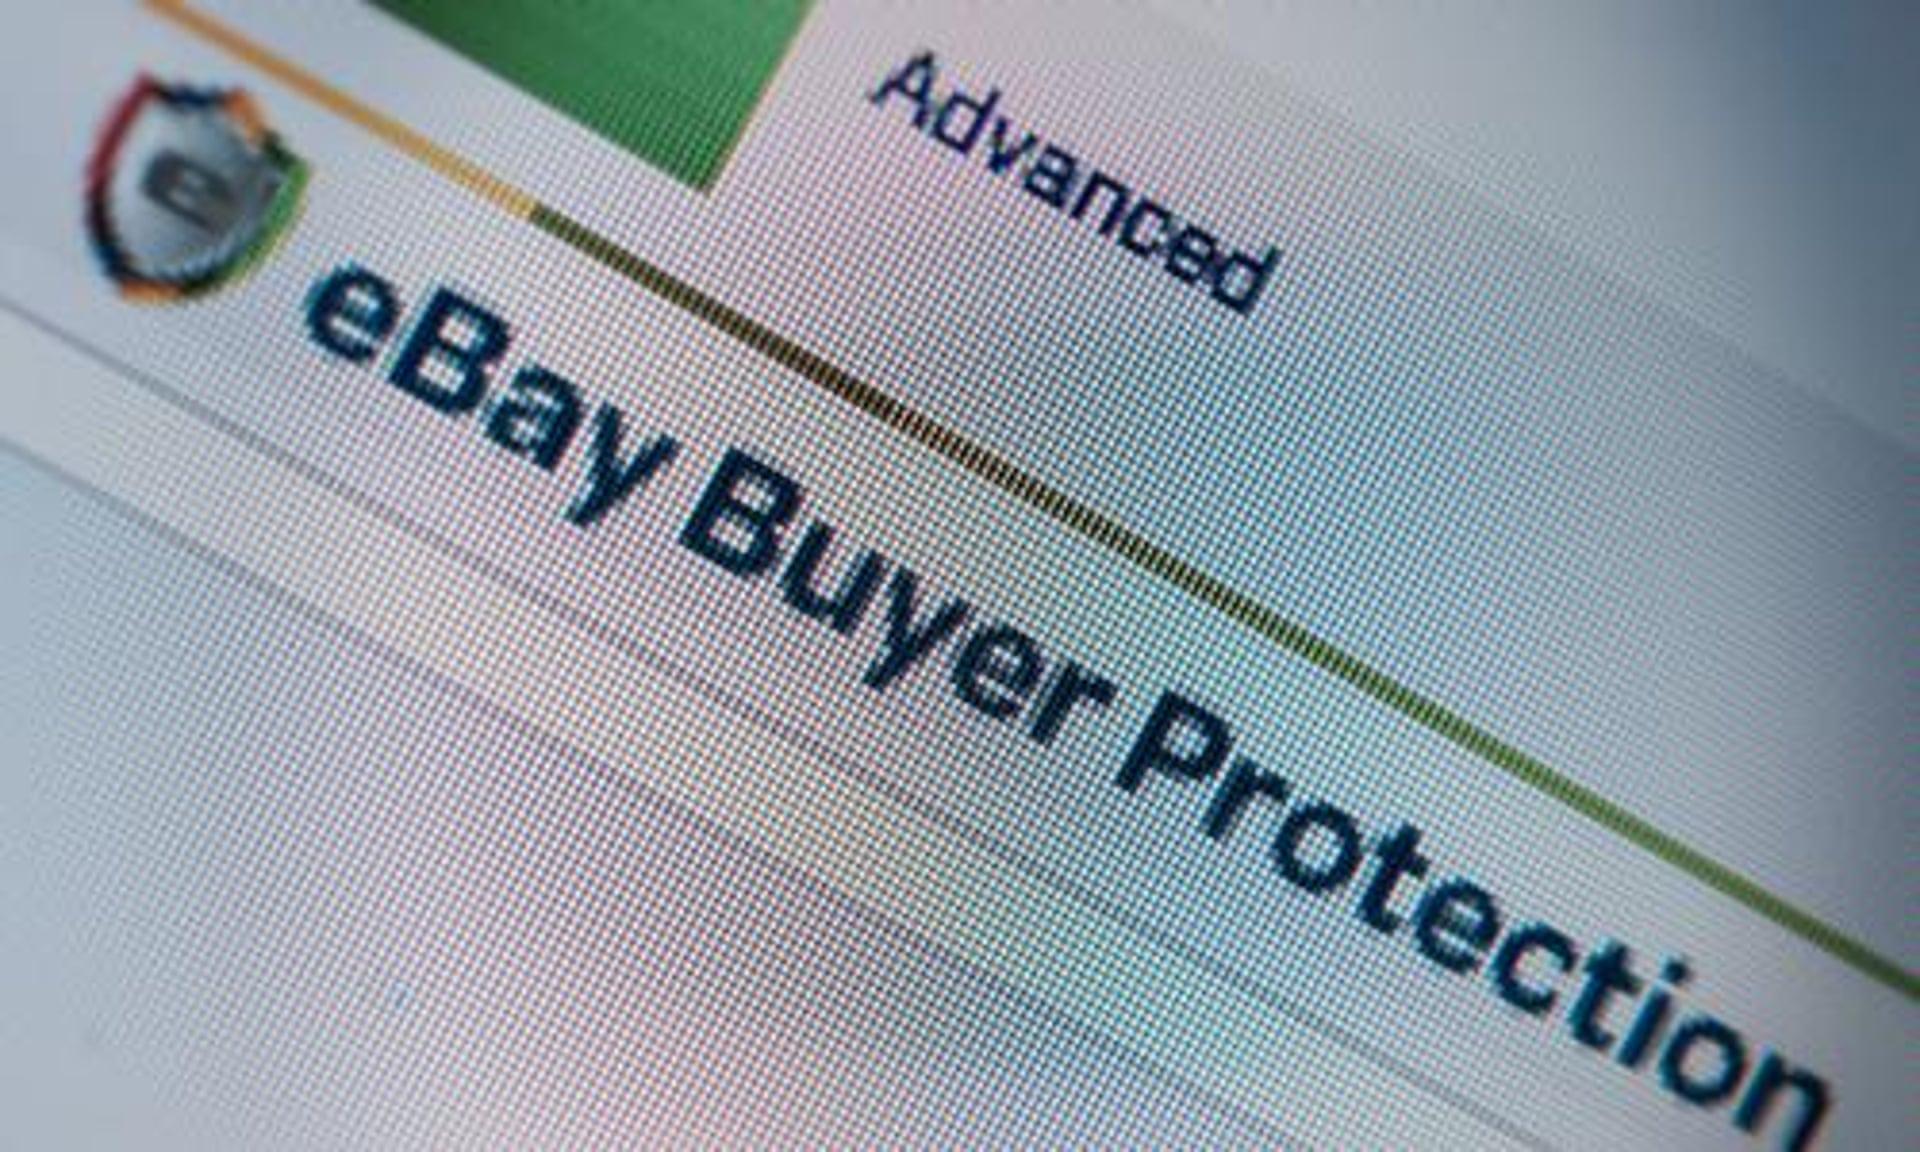 Ebay's money back guarantee has given a buyer carte blanche to nick my  goods | Money | The Guardian